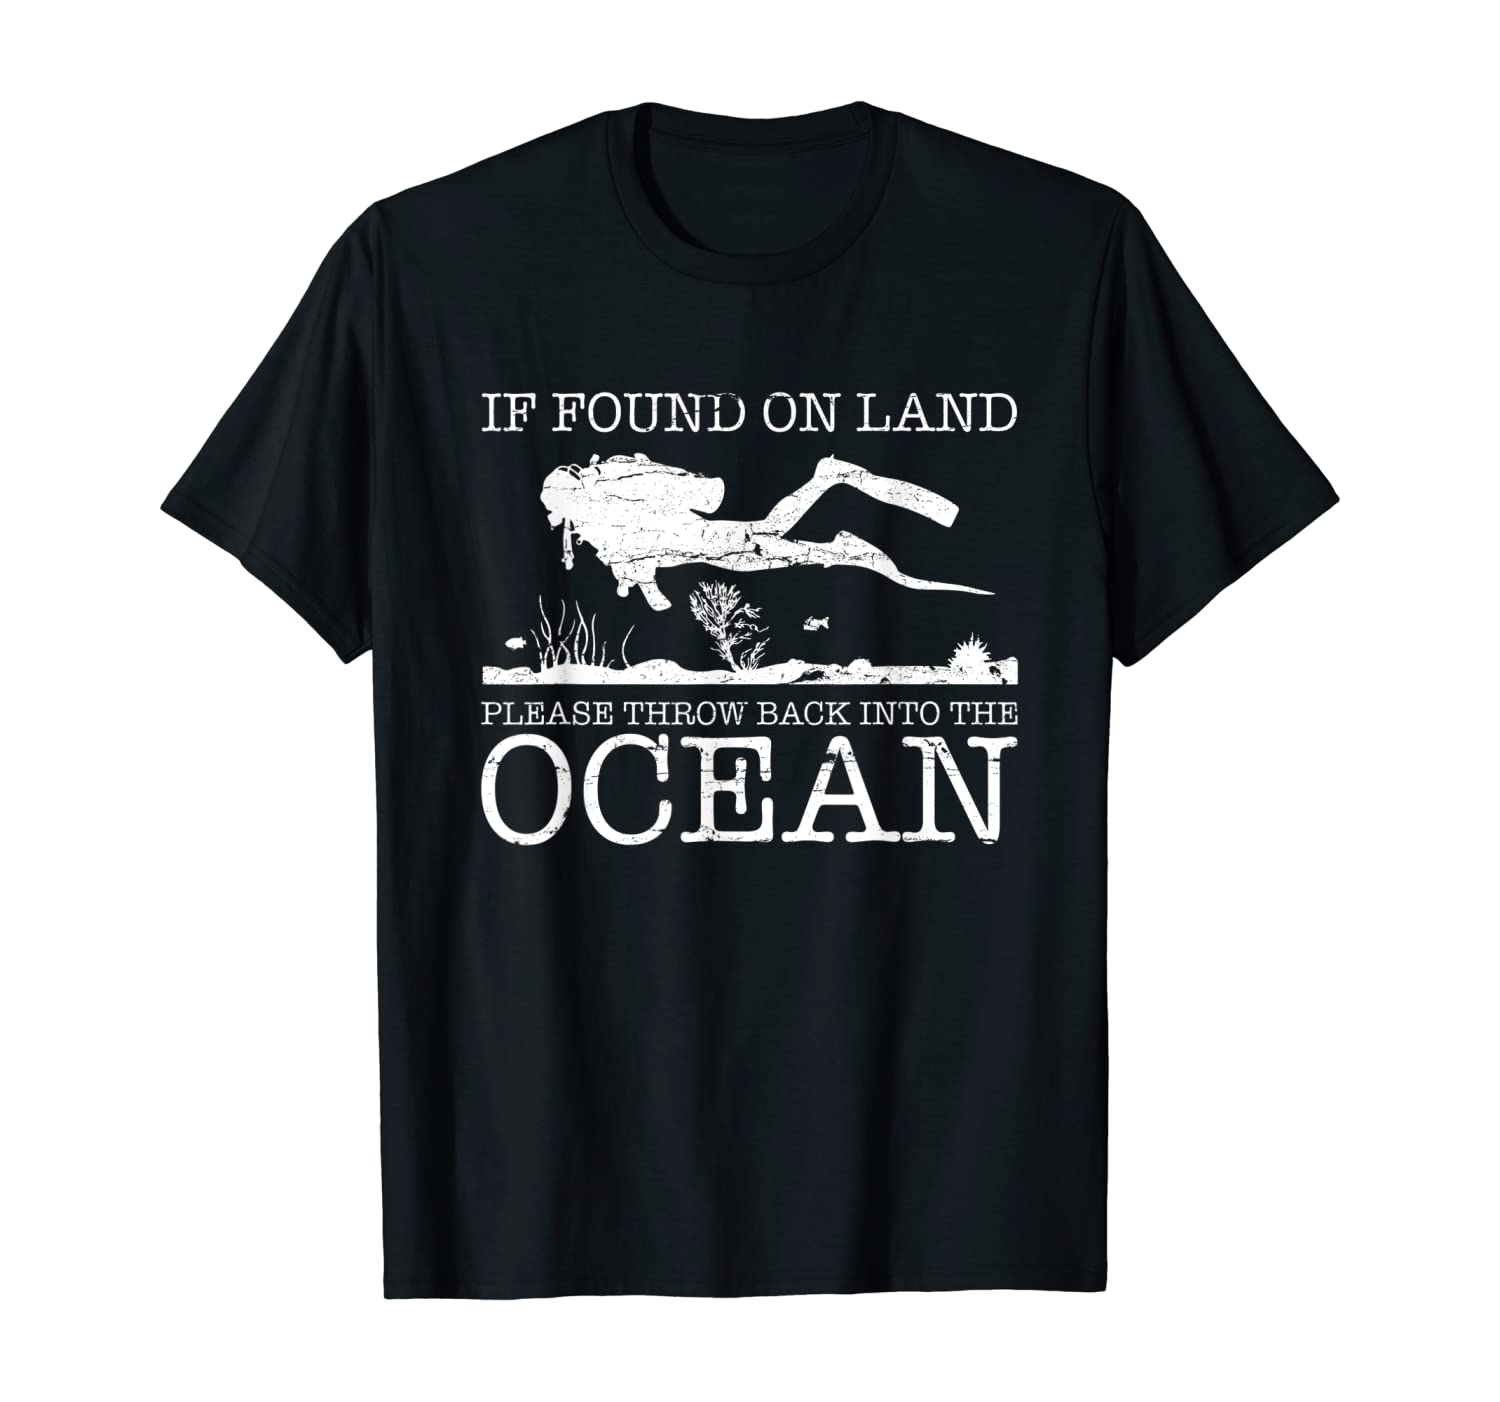 If Found On Land Scuba Diving Shirt Funny Diver Gift